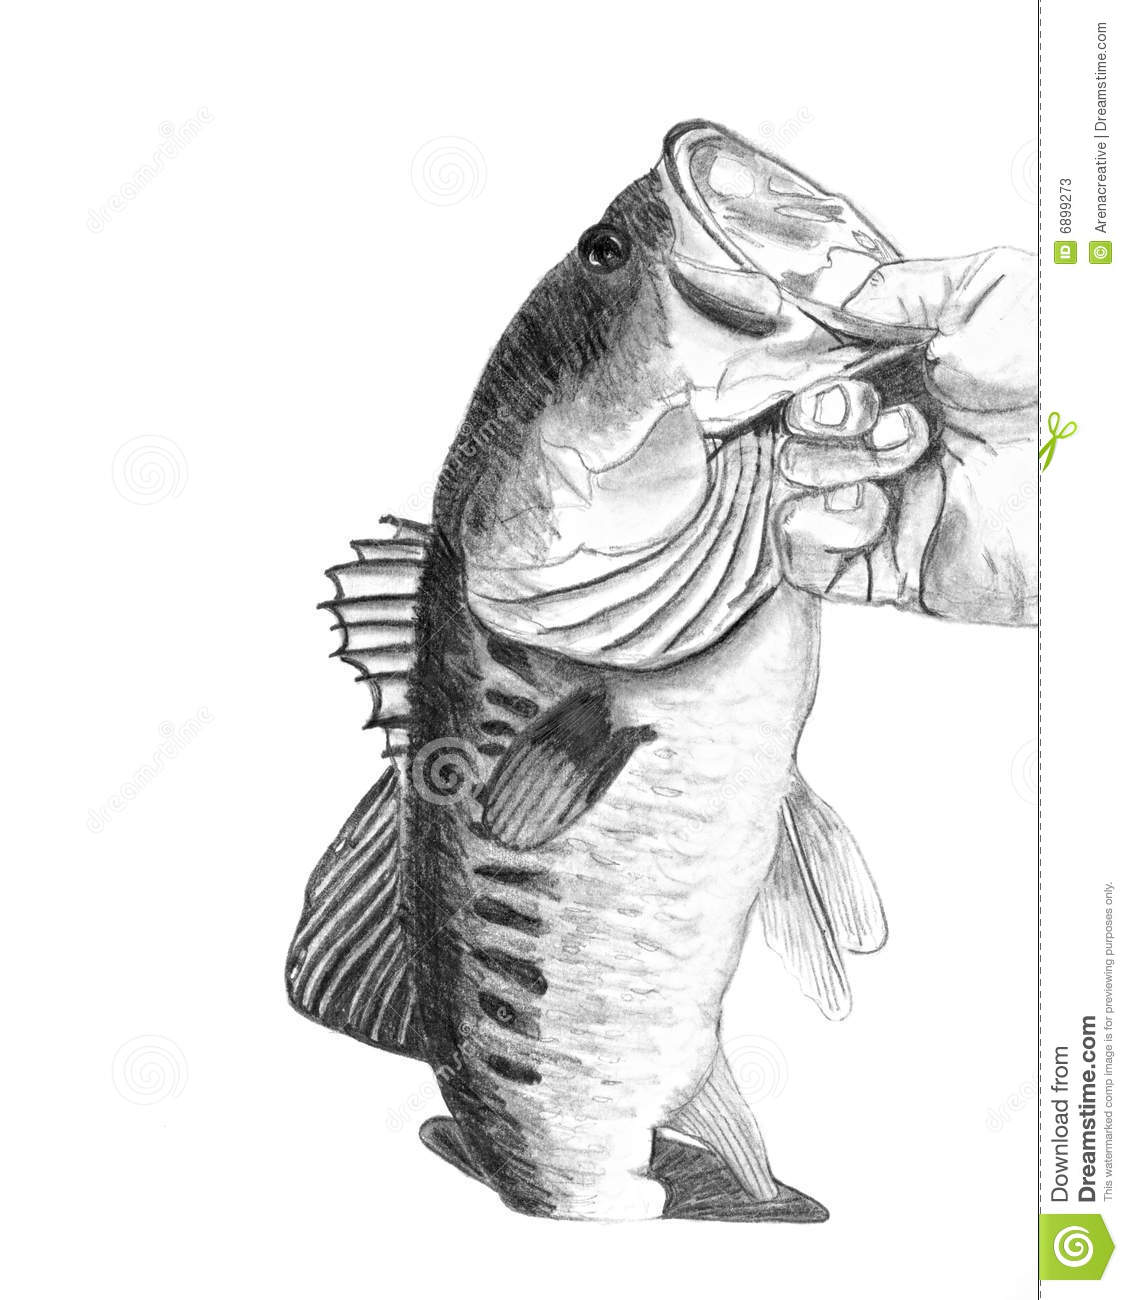 Bass Fish Drawing Stock Illustration Illustration Of Creel 6899273